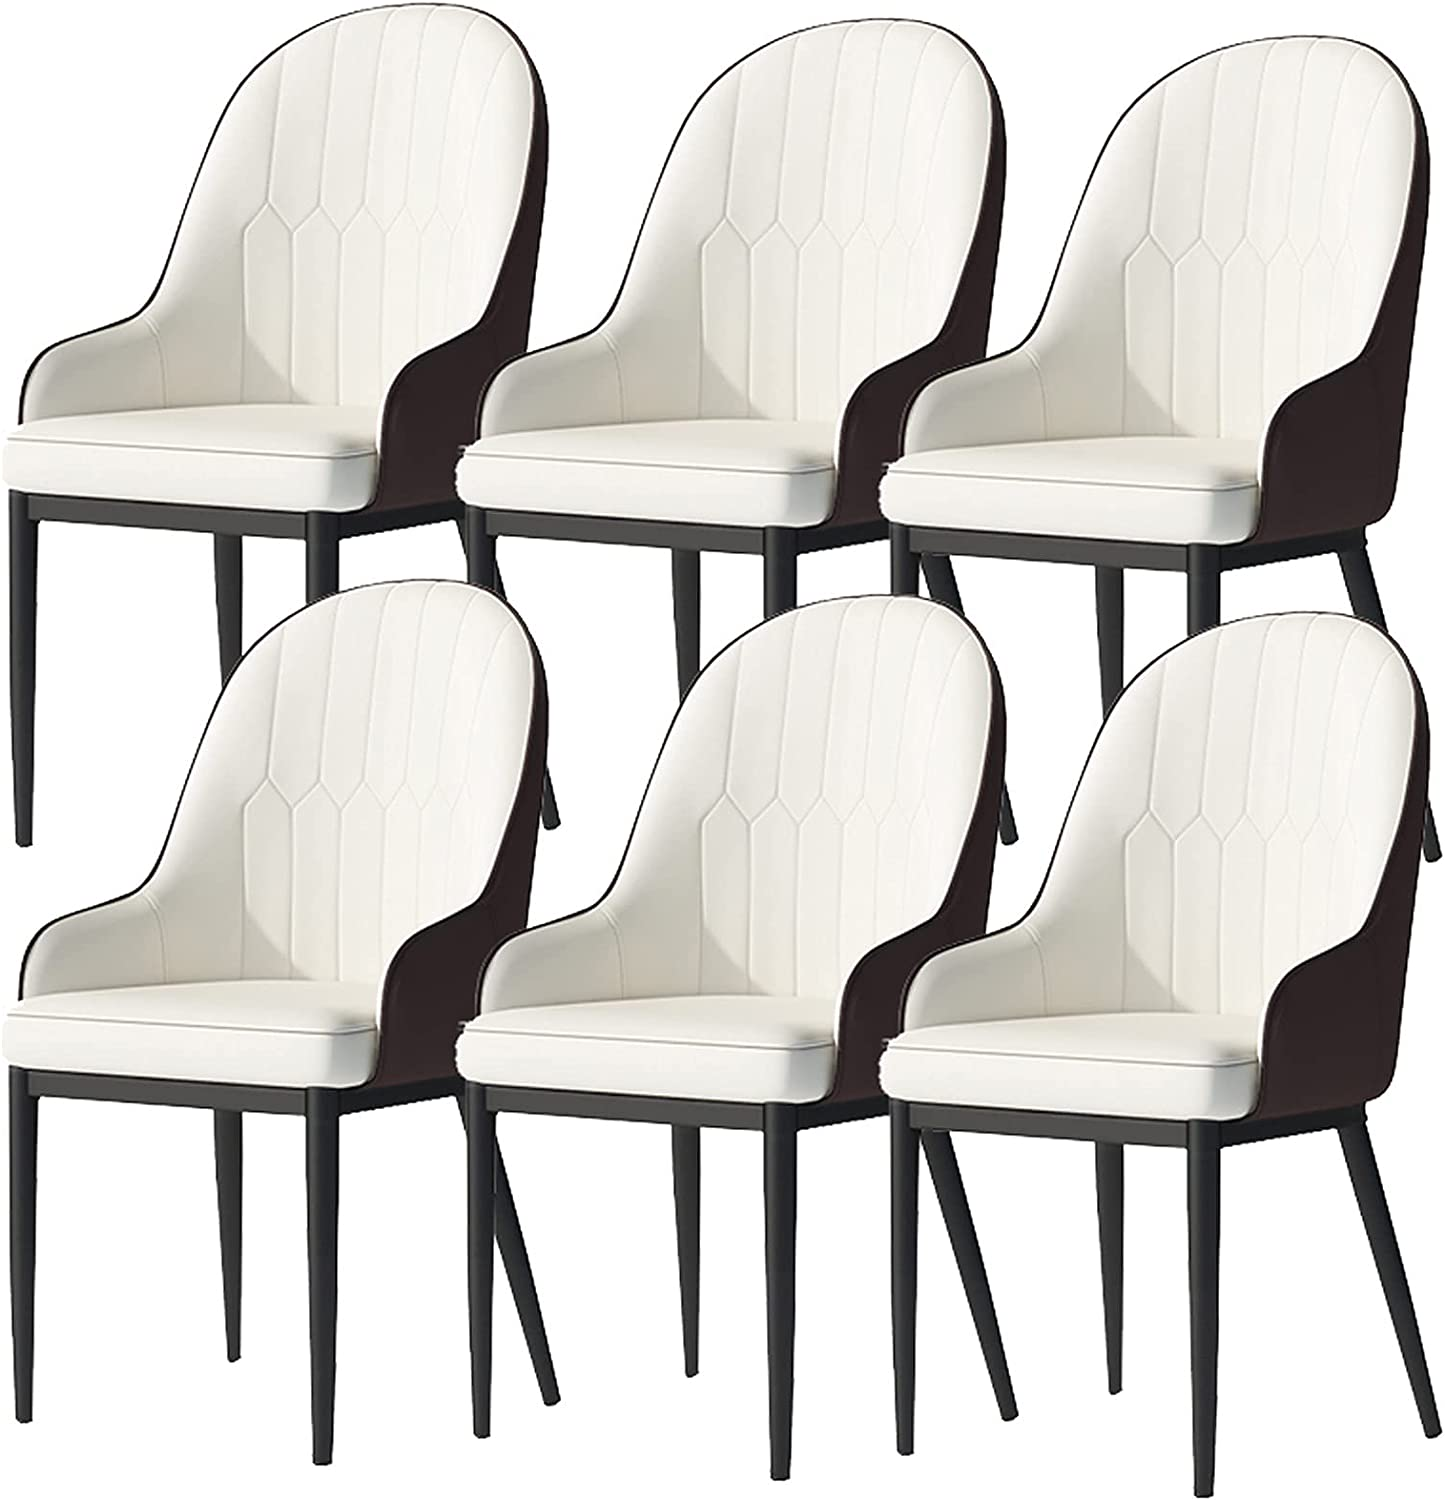 VEESYV Dining Chairs Set Manufacturer regenerated product of 6 Leath Max 78% OFF PU with Matte Kitchen